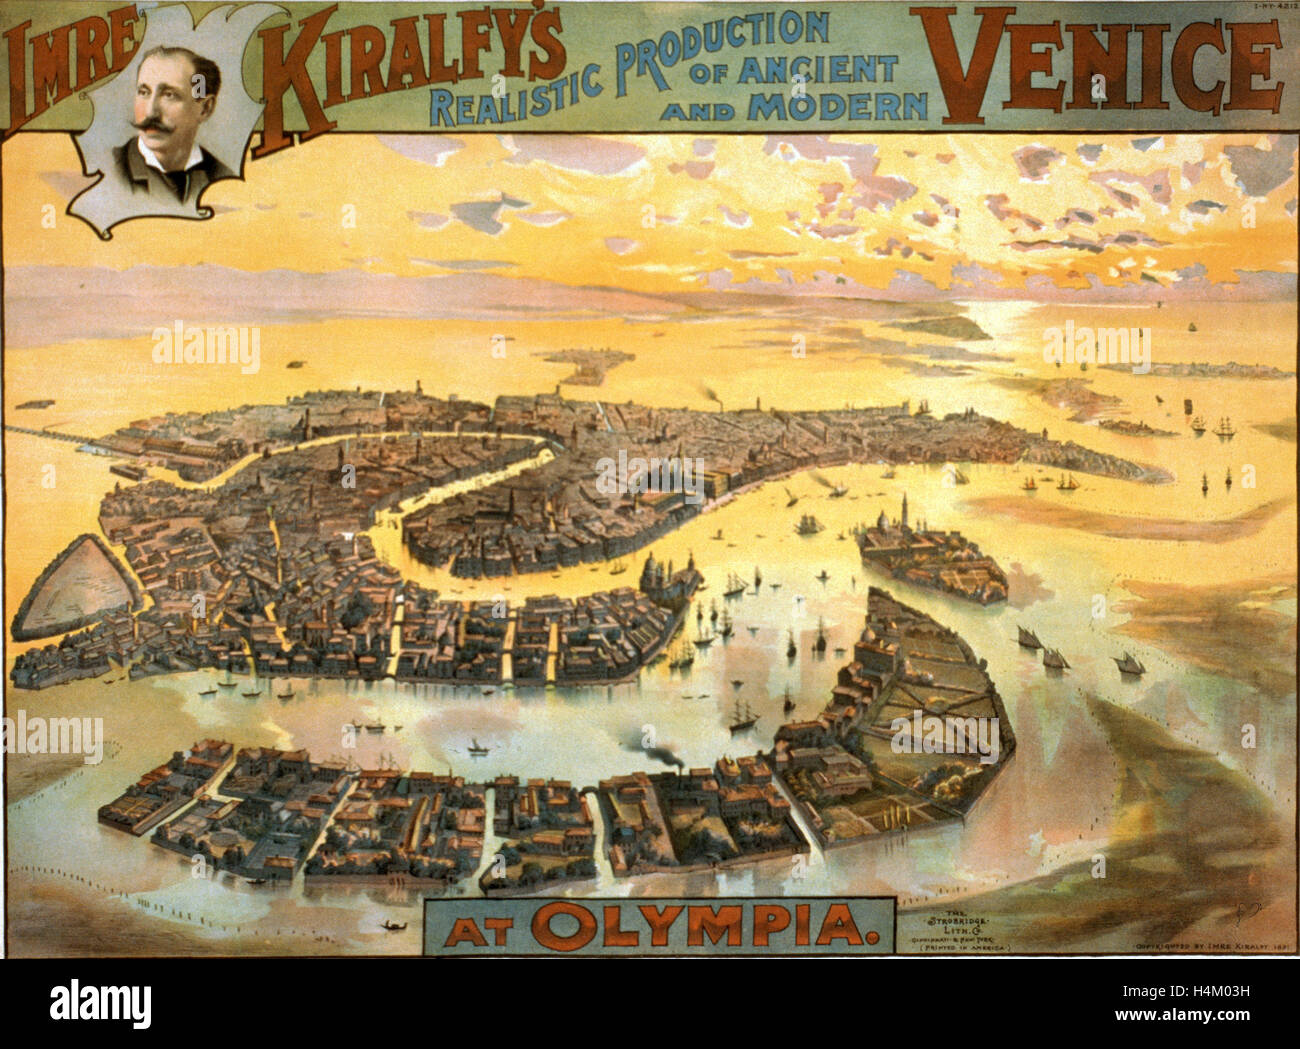 Imre Kiralfy's Realistic Production of Ancient and Modern Venice at Olympia, Bird's-Eye View, Circa 1891, - Stock Image